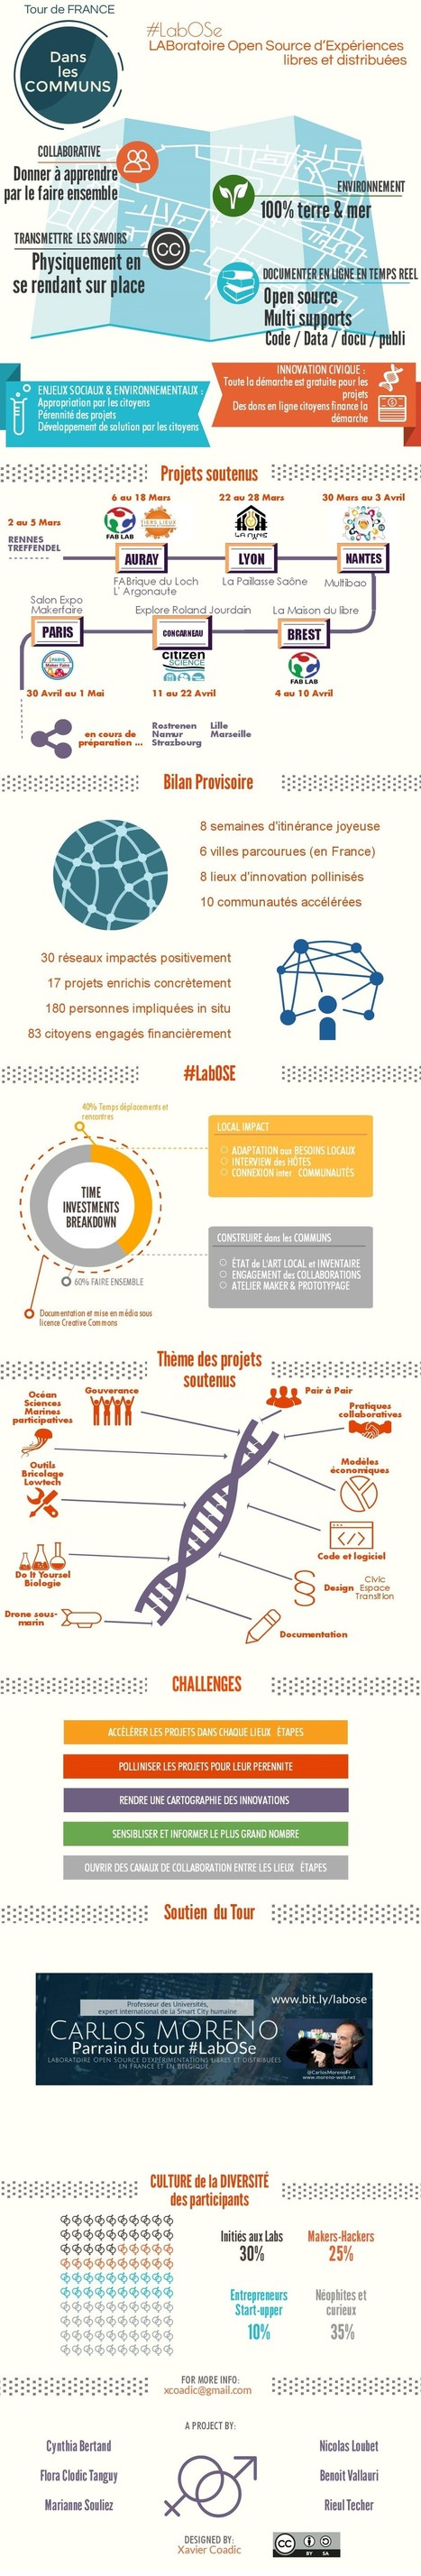 Le Tour de France dans les Communs en infographie | Innovation sociale | Scoop.it